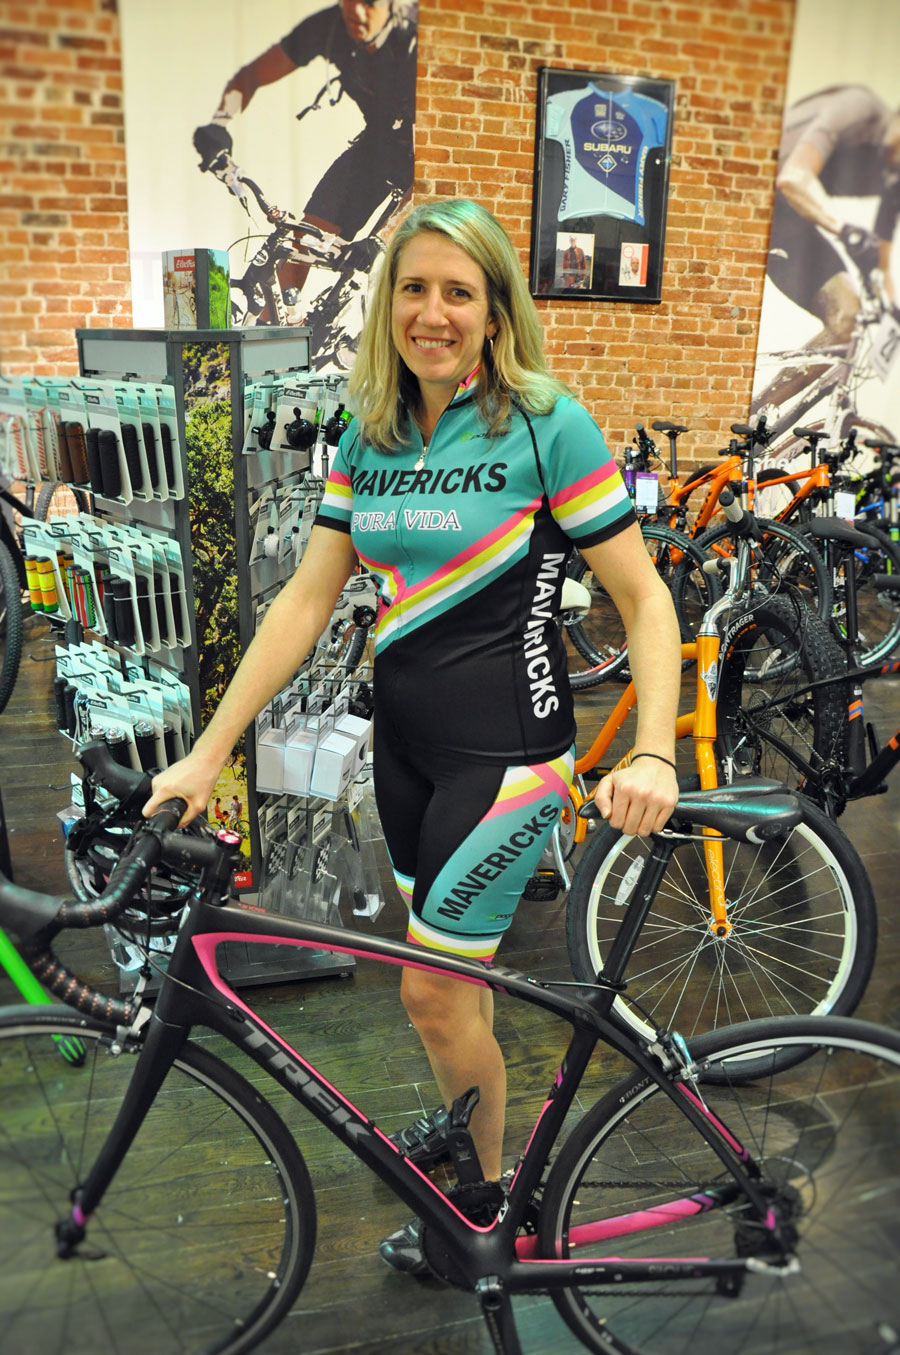 young woman dressed in cycling gear, standing with bike in bike shop